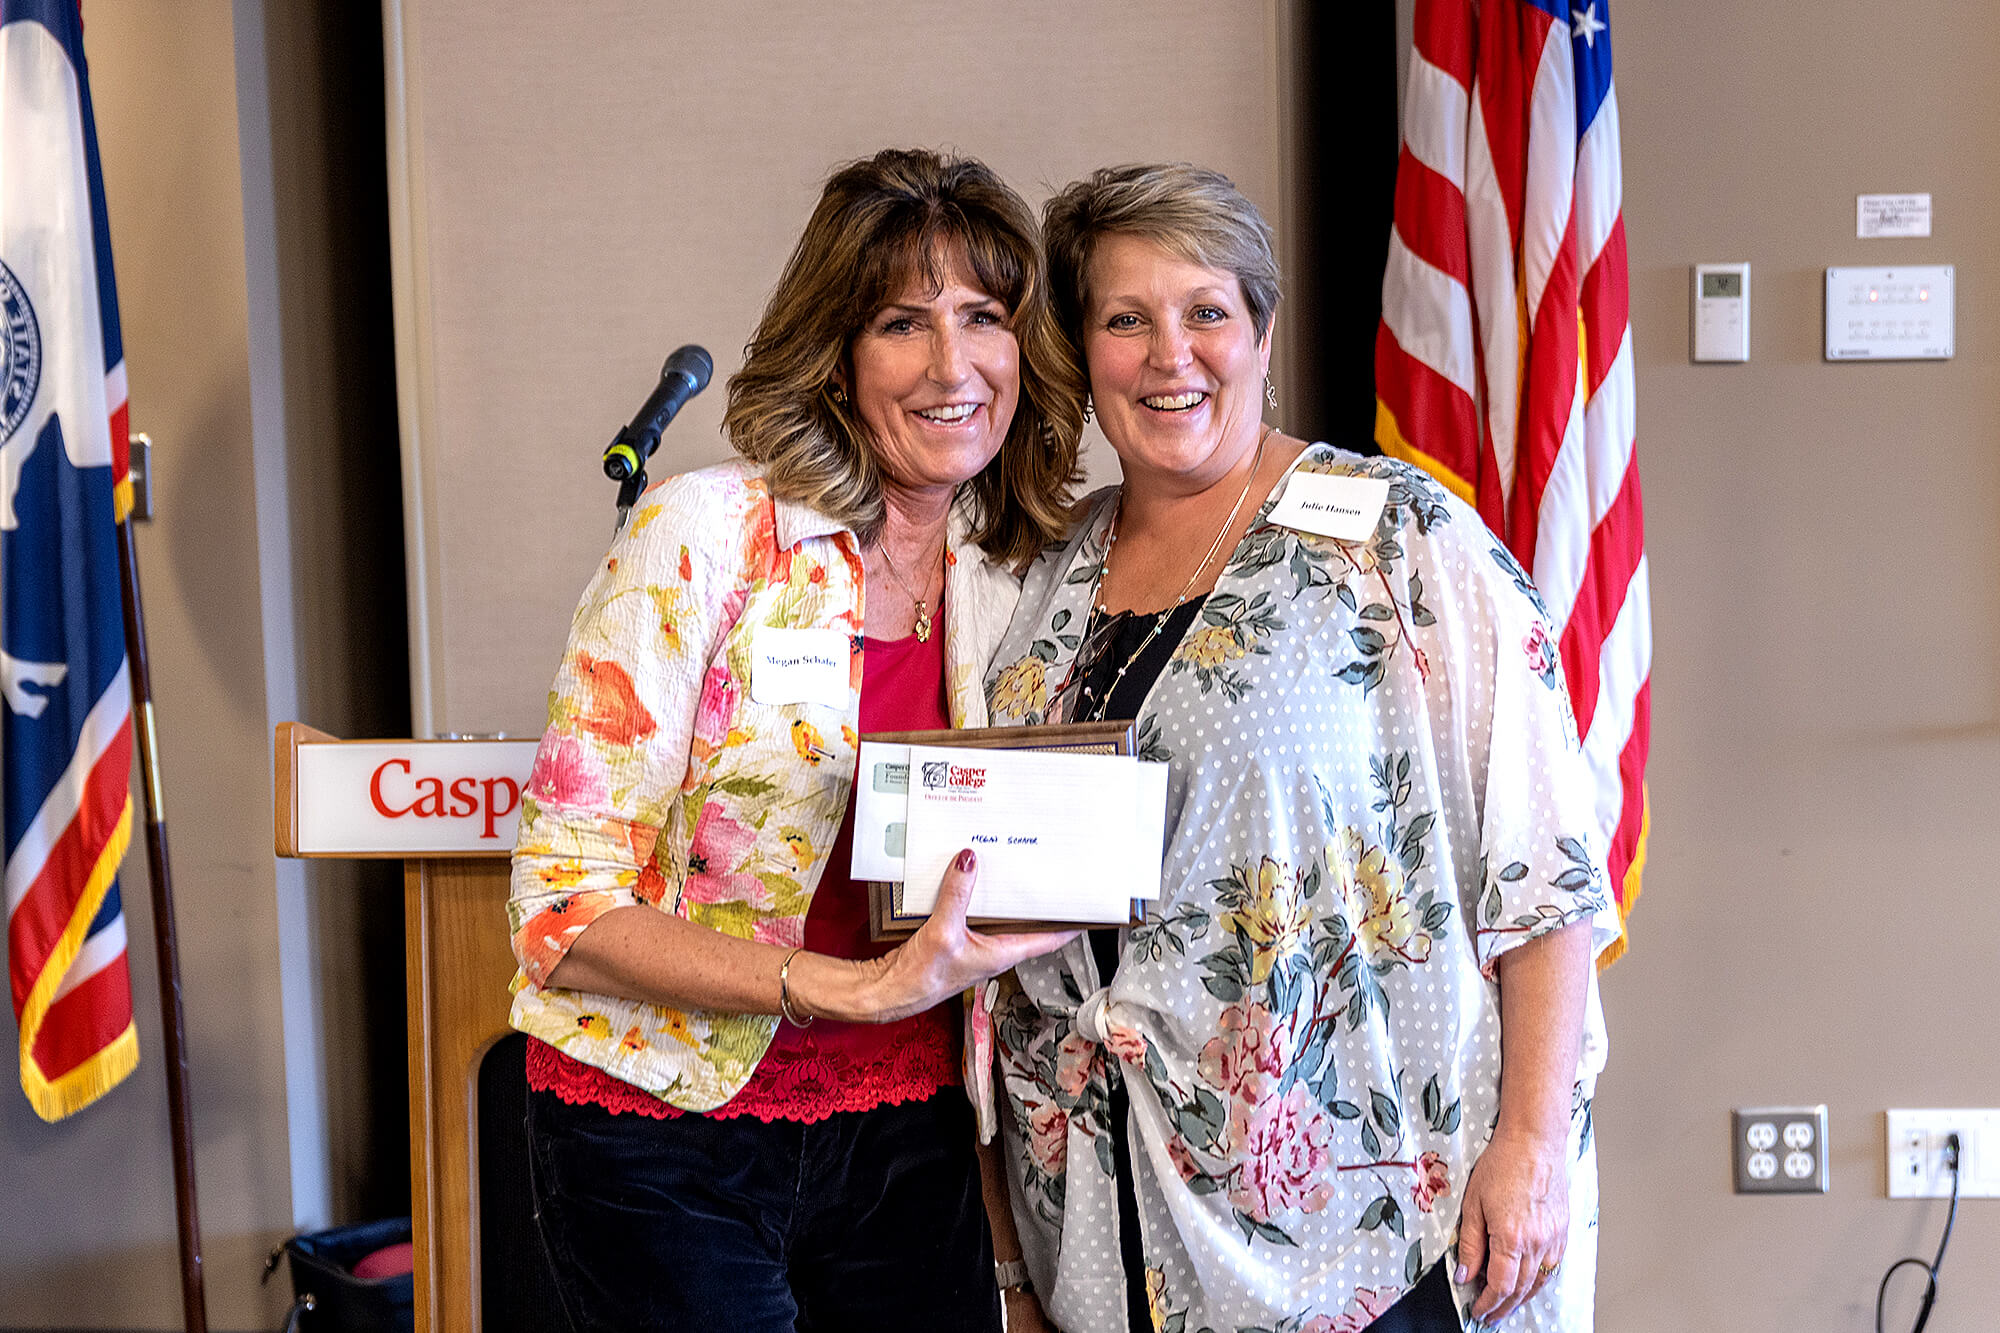 Robert O. Durst Classified Staff Award: Megan Schafer, executive assistant for administrative and student services